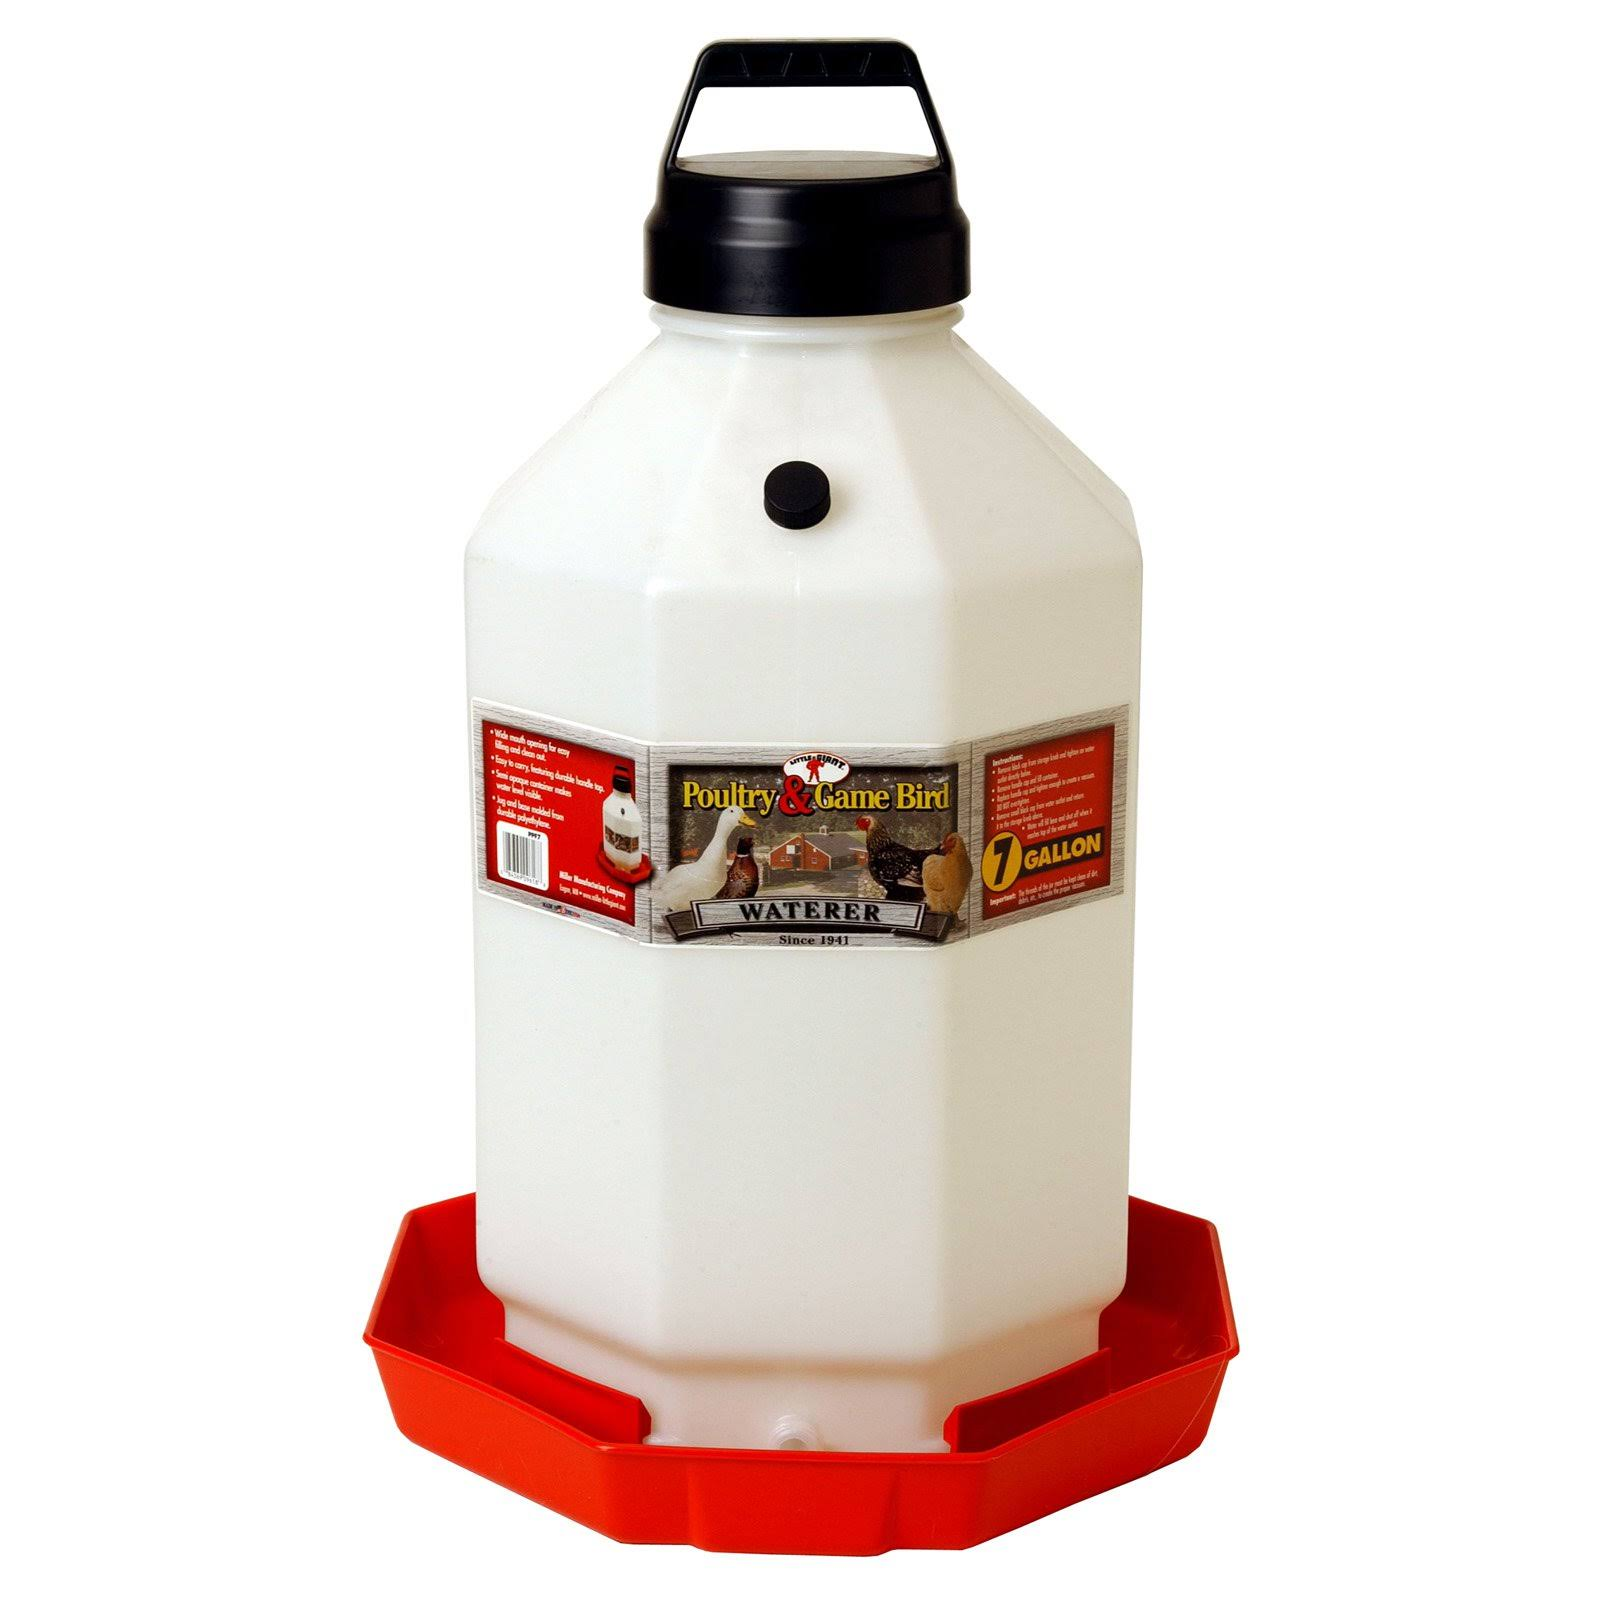 Miller PPF7 Plastic Poultry Waterer - Red